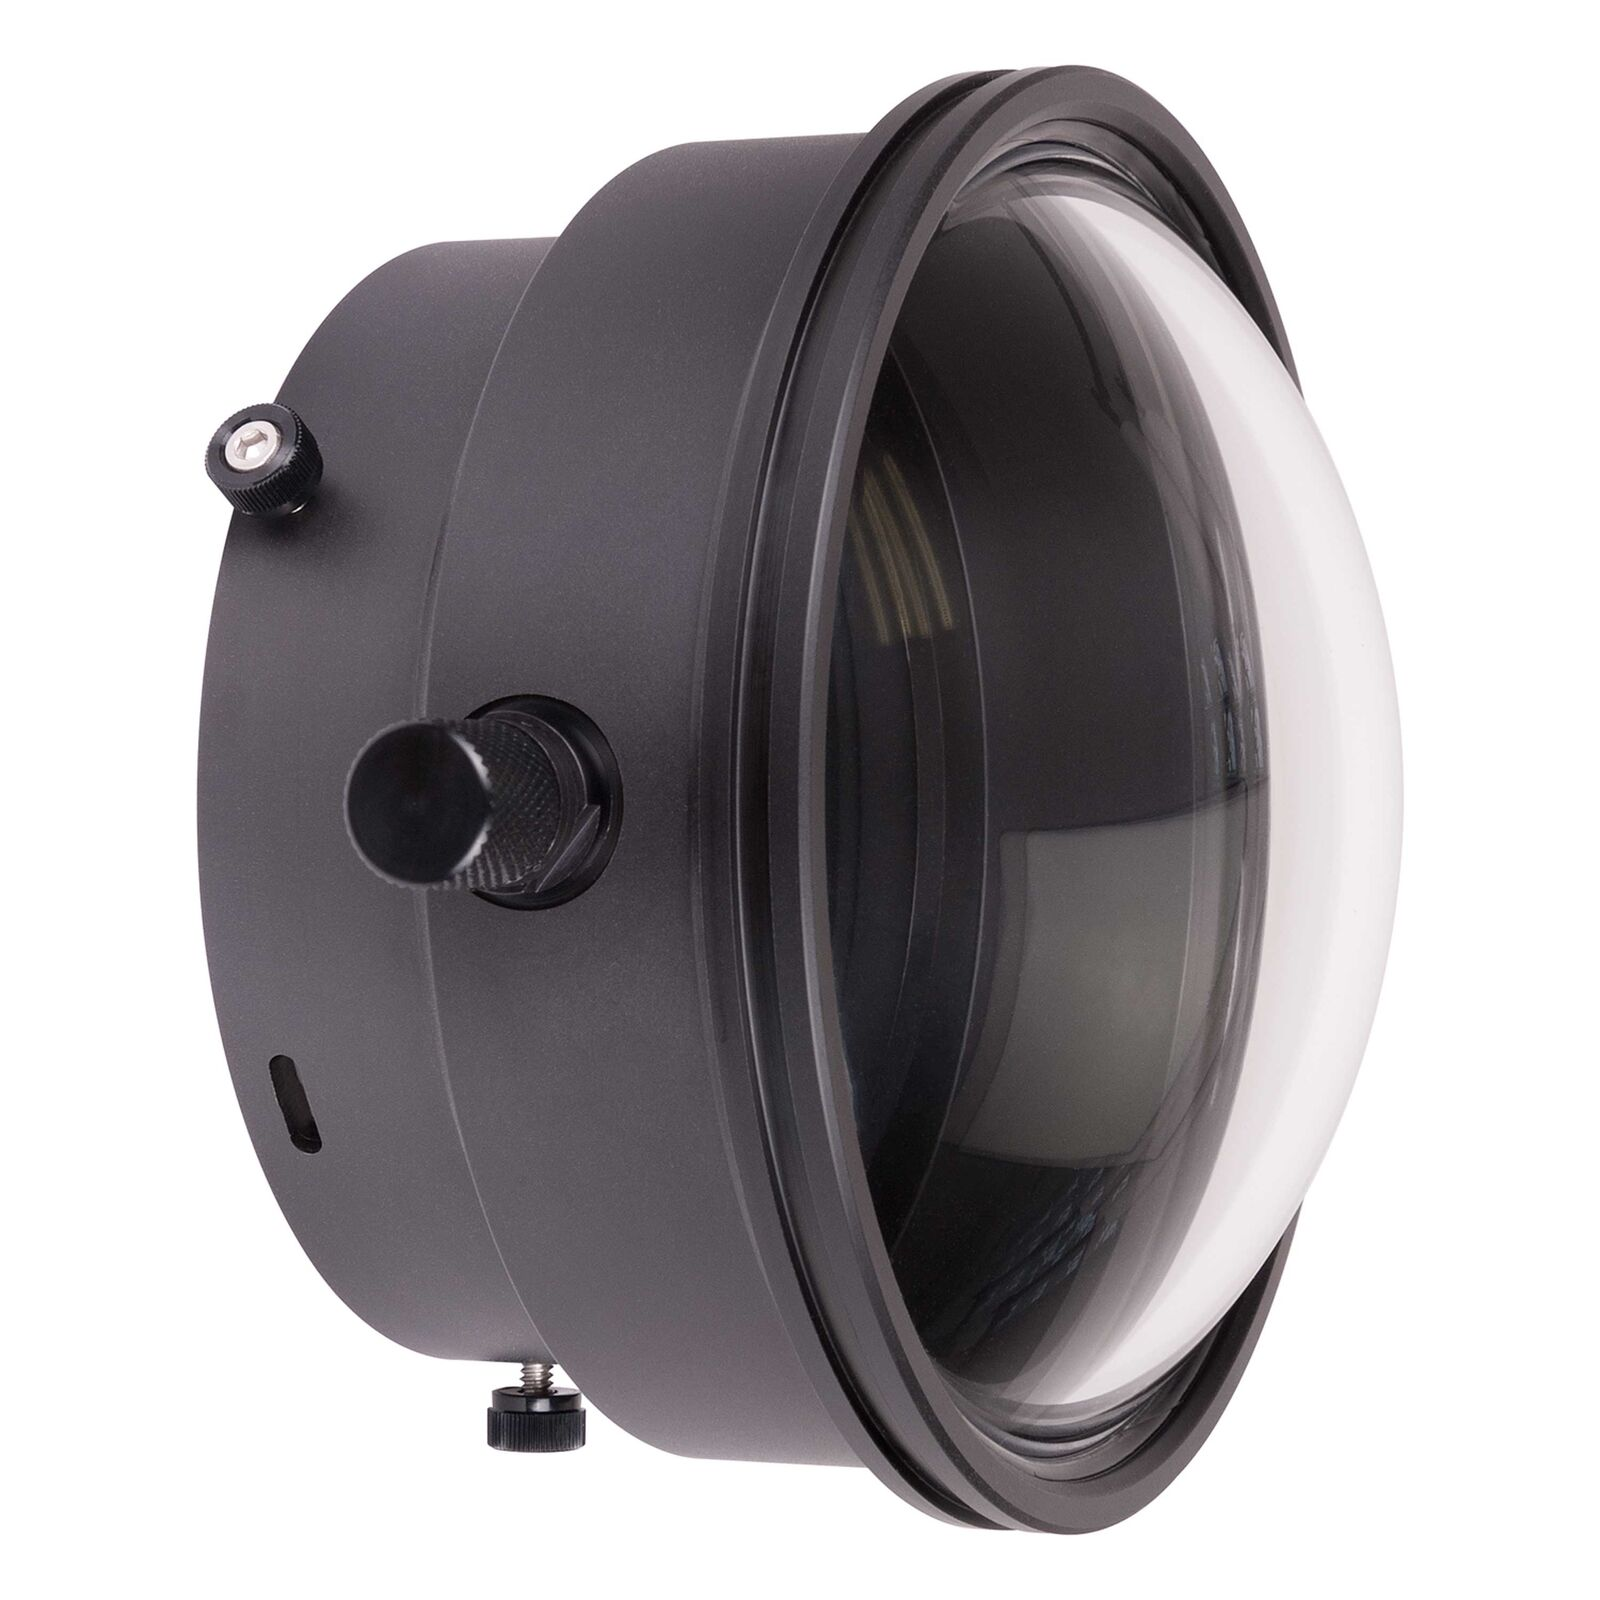 Ikelite - DLM 6 inch Dome Port with Zoom Extended .375 Inch